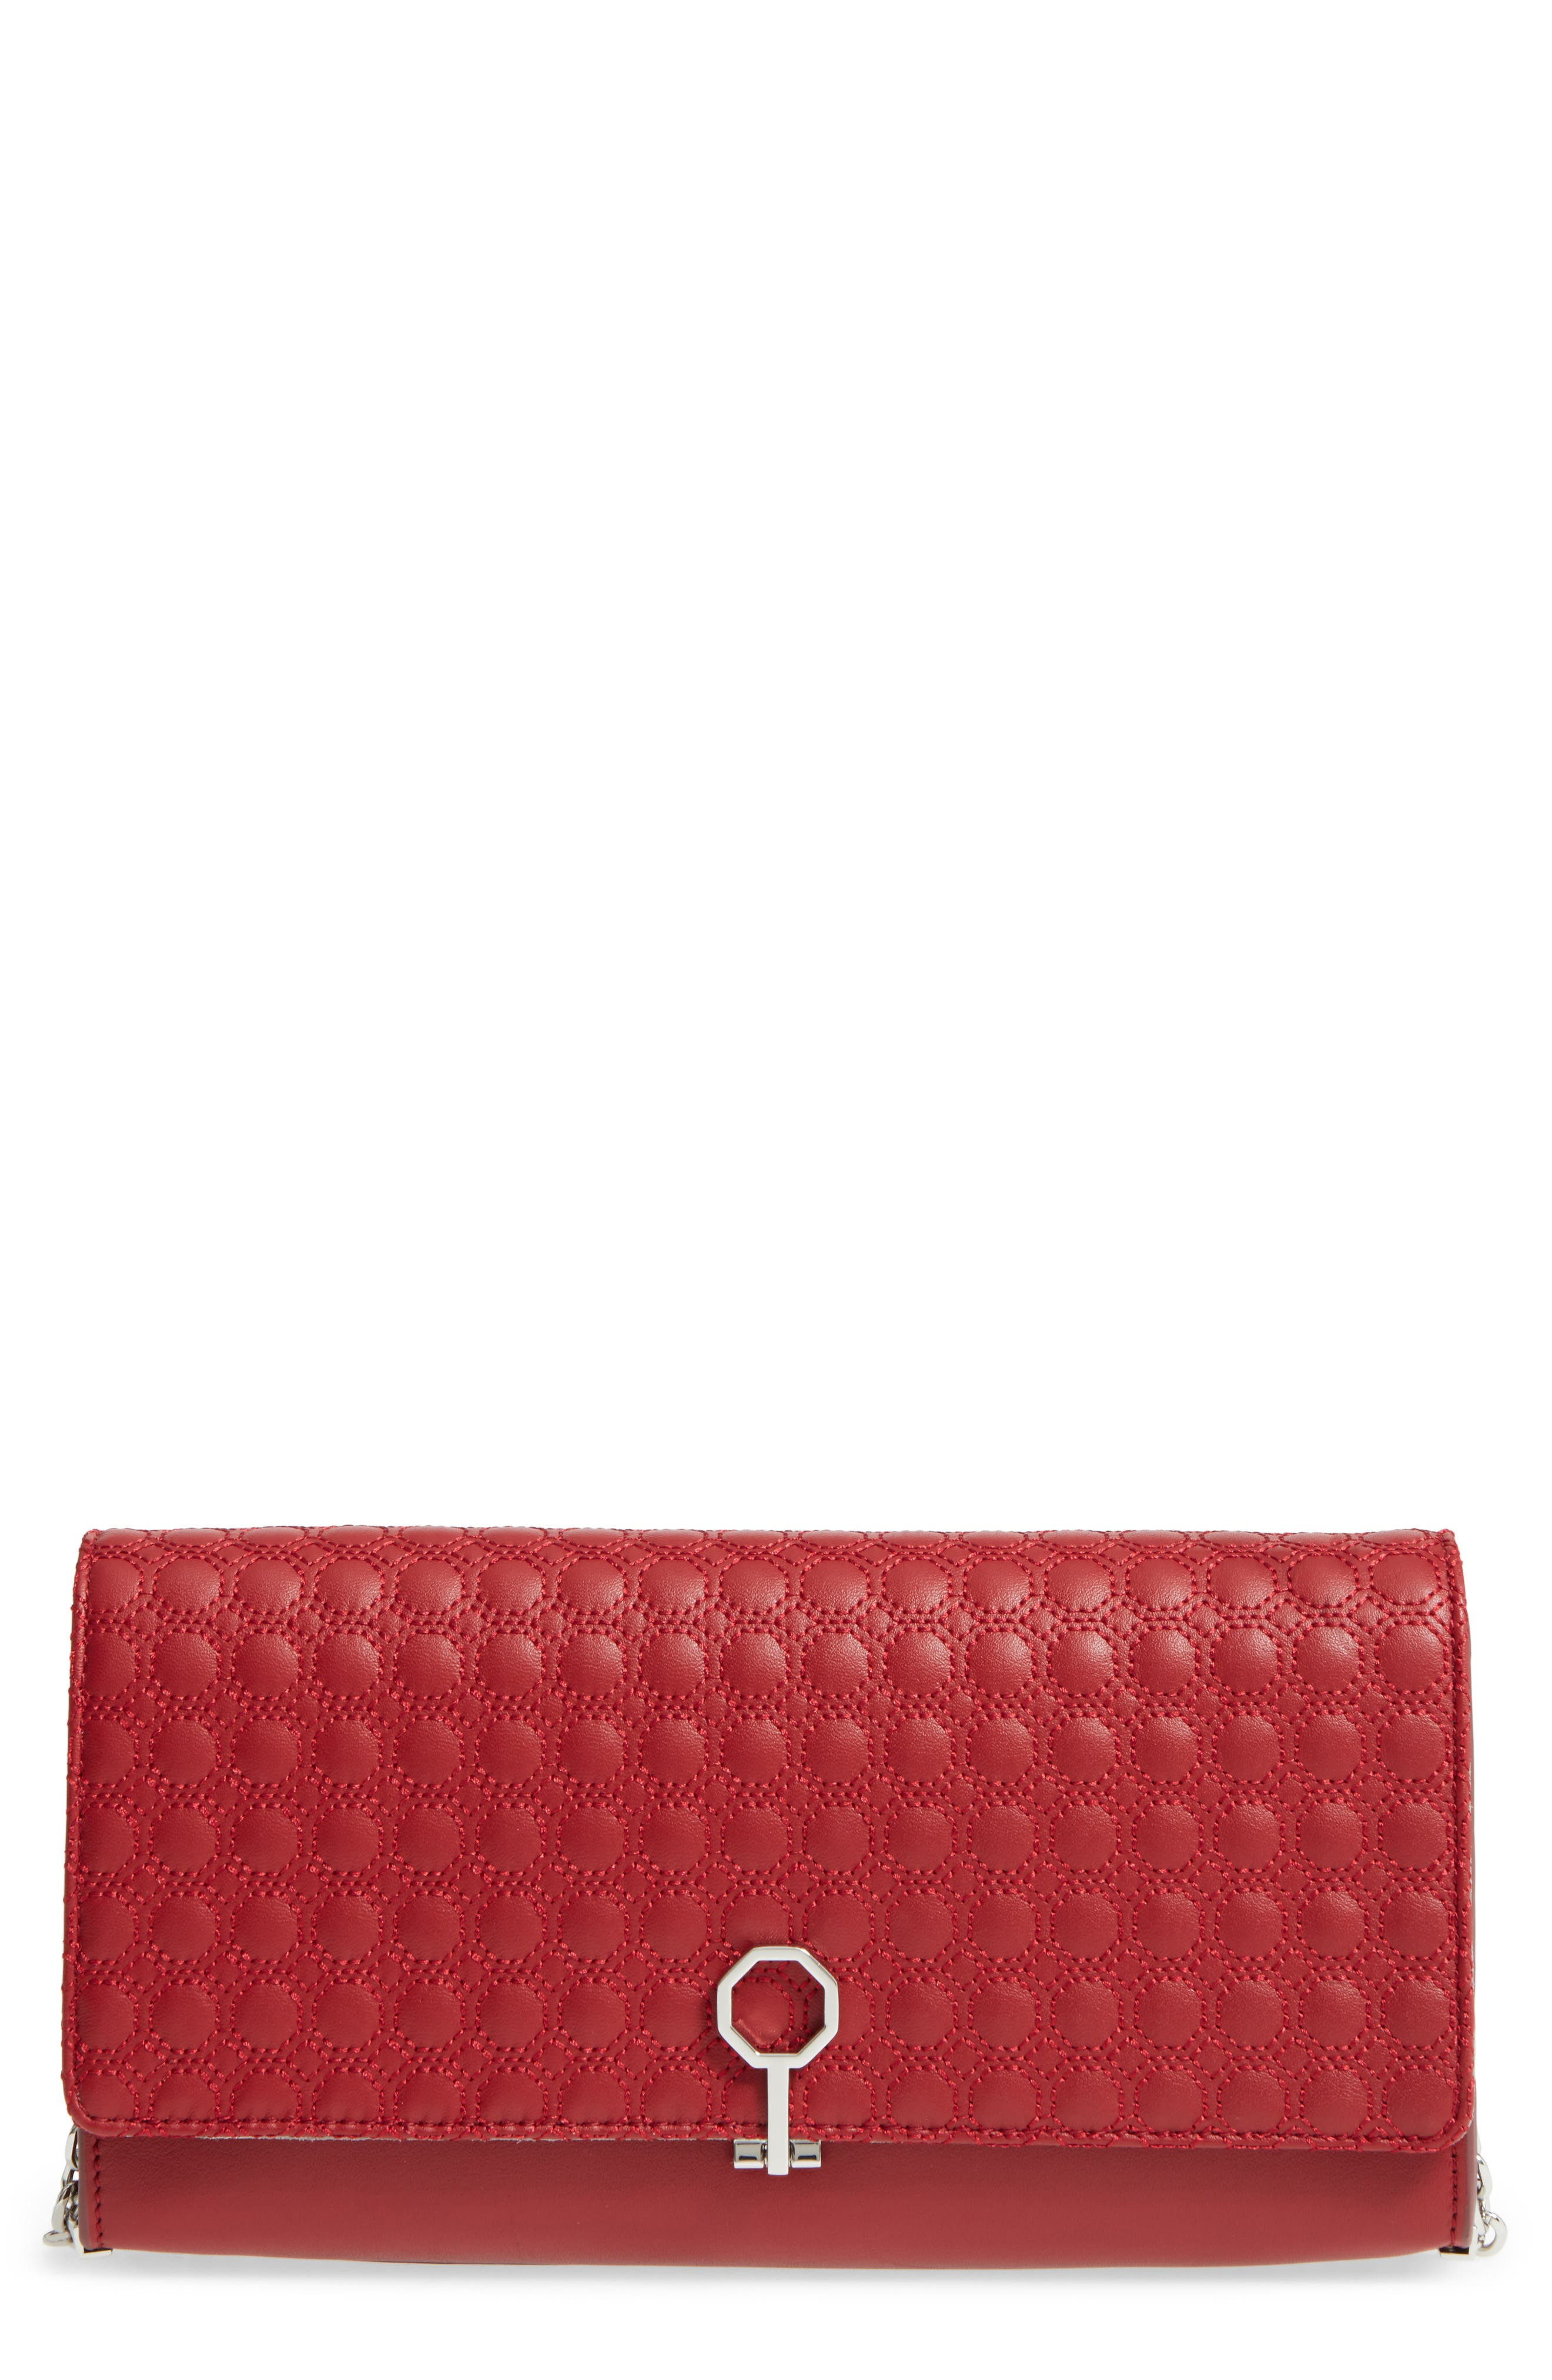 'Yvet' Leather Flap Clutch,                         Main,                         color,